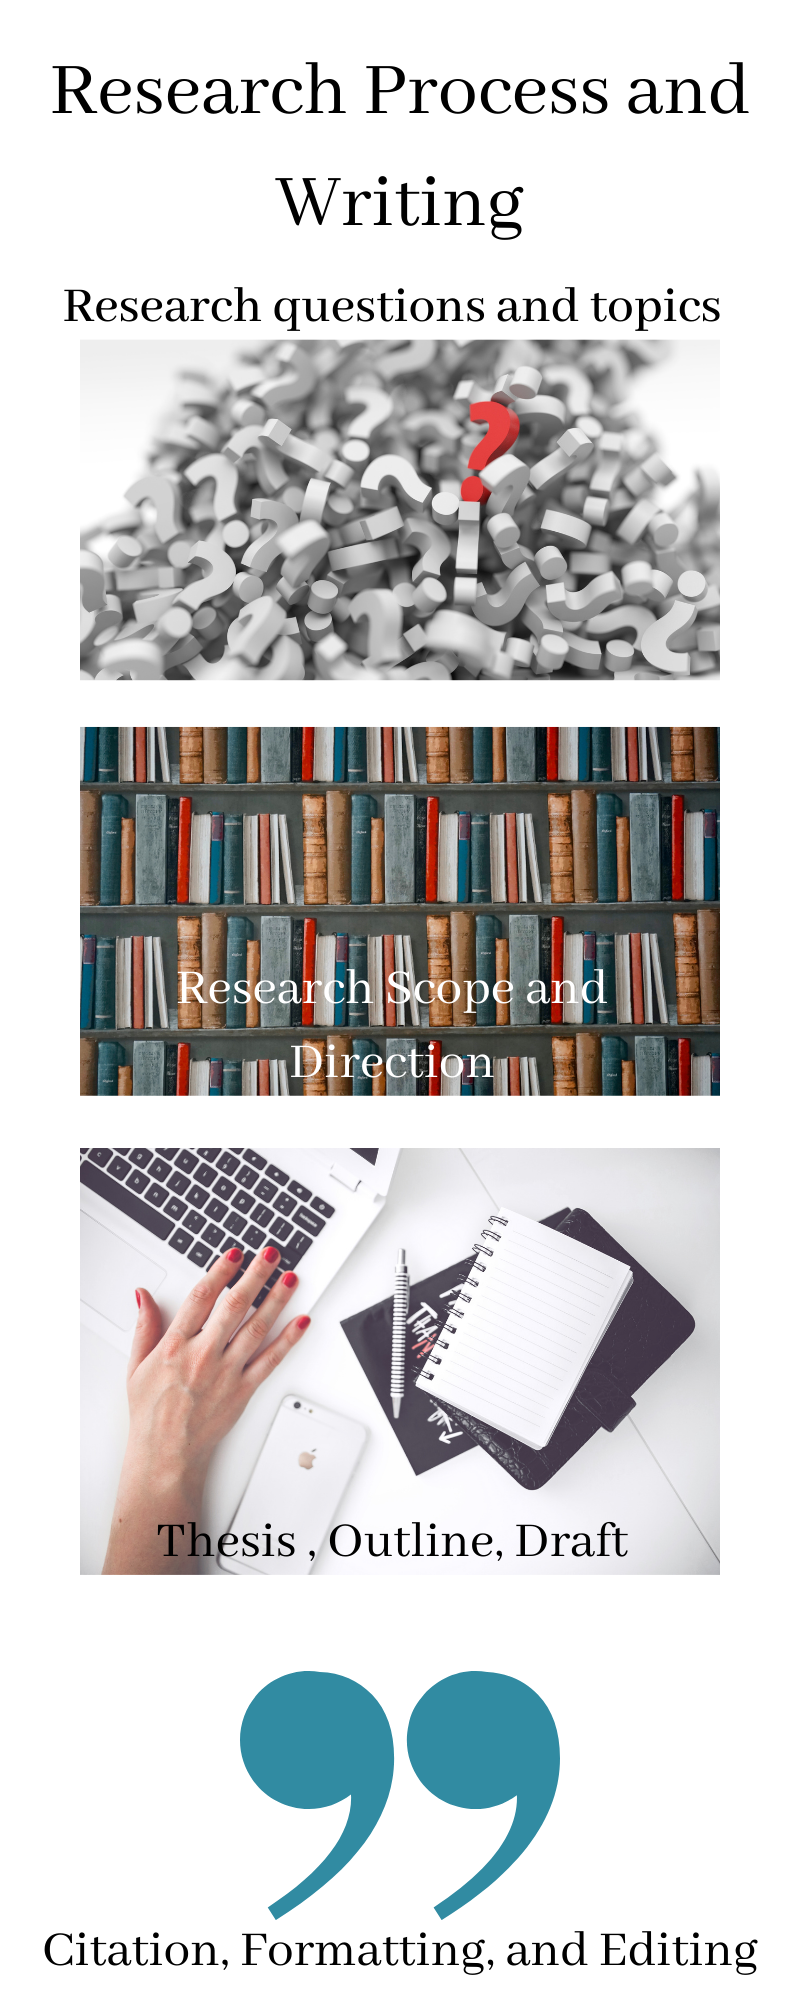 Research Process and Writing